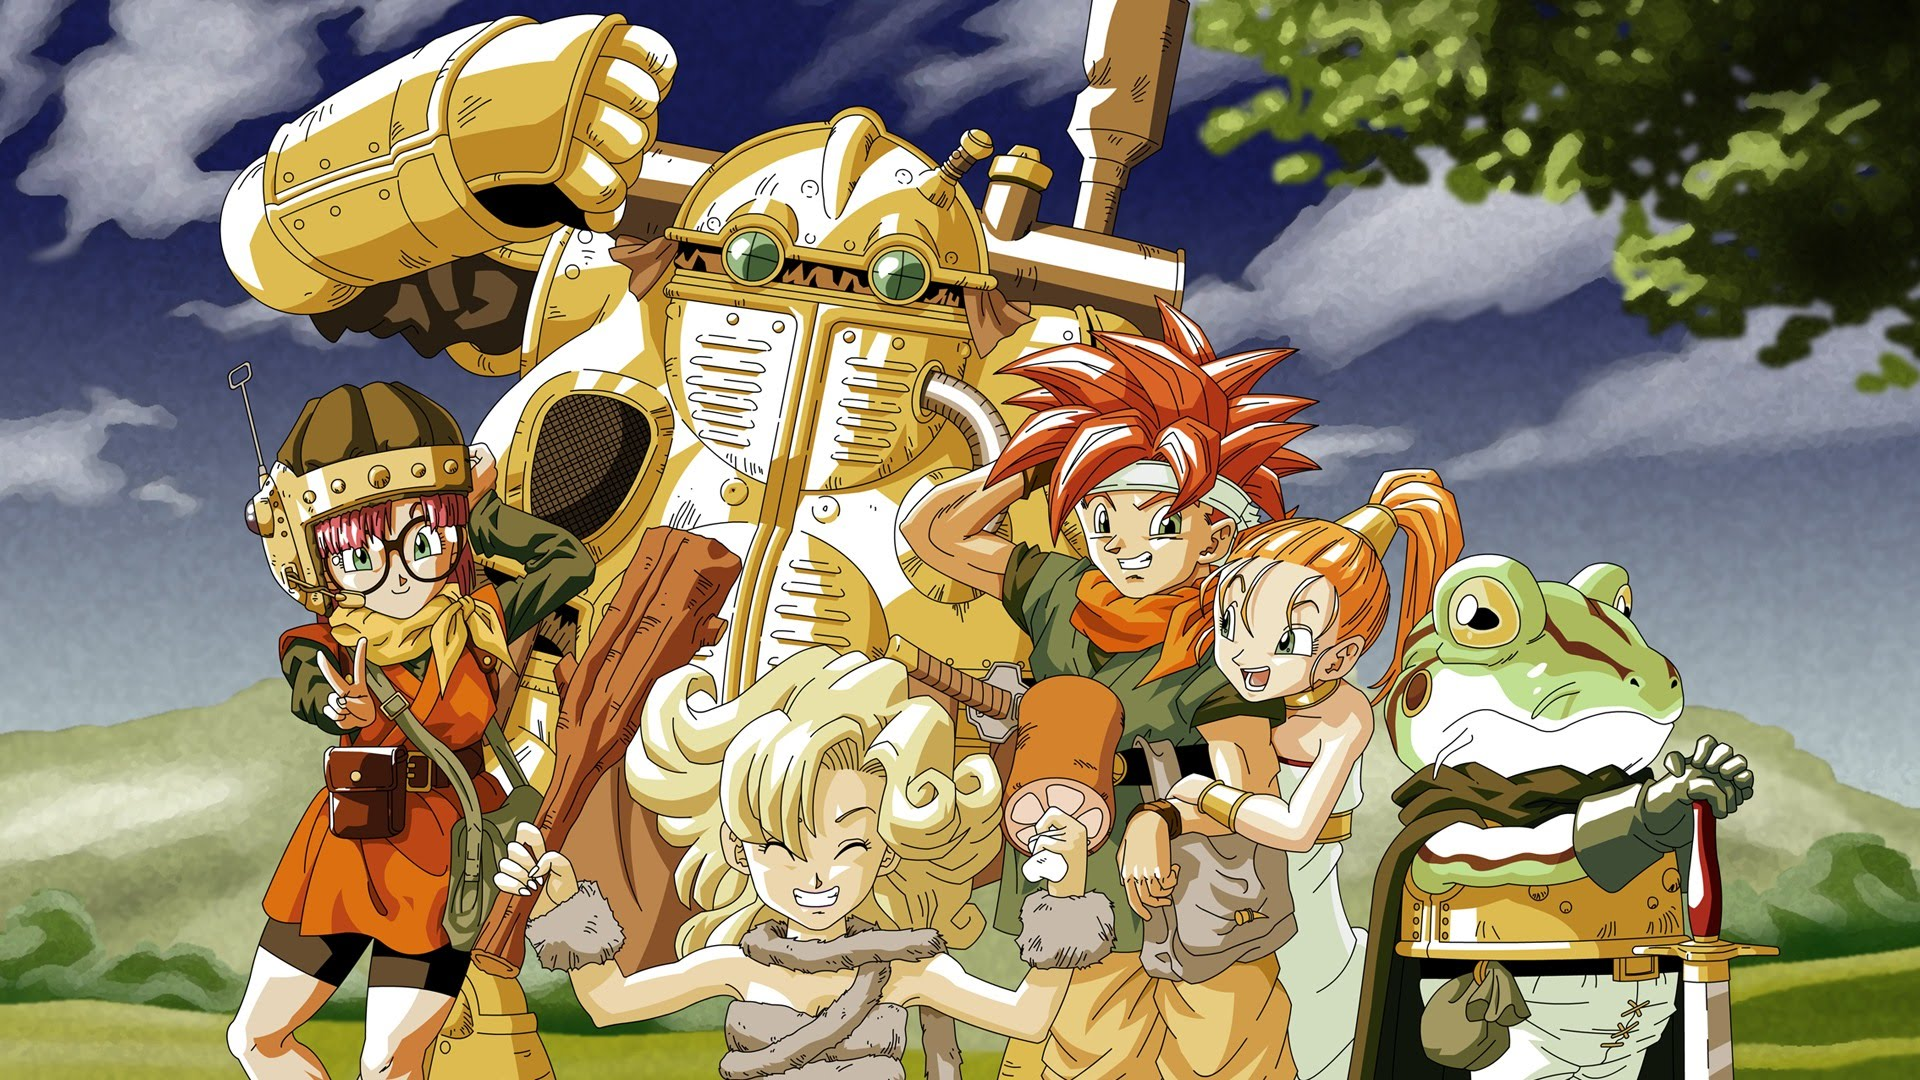 Next Chrono Trigger Steam Update To Introduce Original SNES Graphical Style